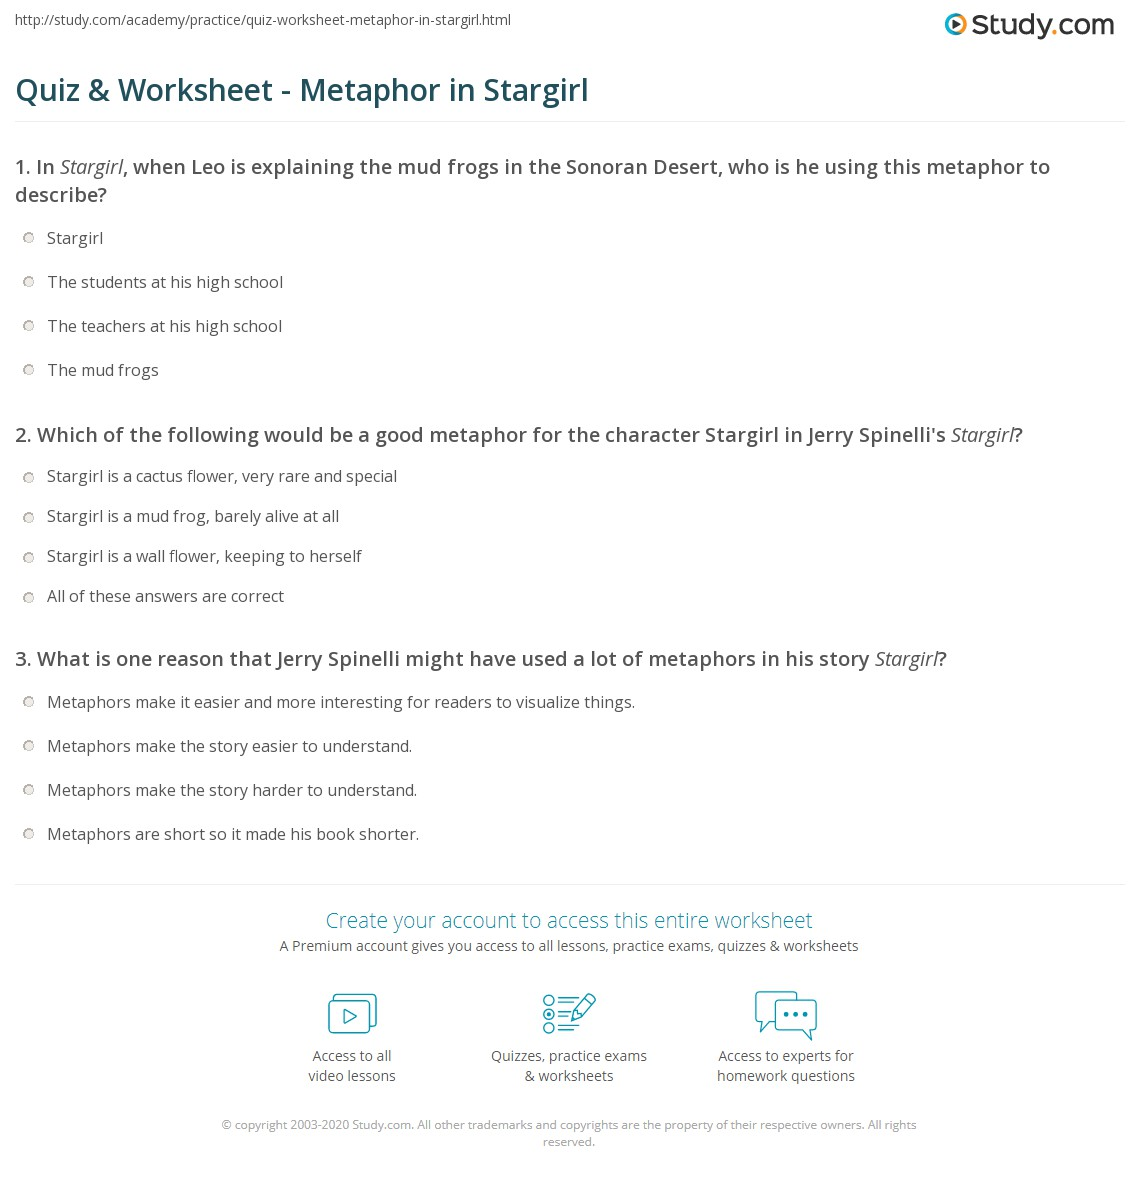 Quiz Worksheet Metaphor in Stargirl – Metaphors Worksheet